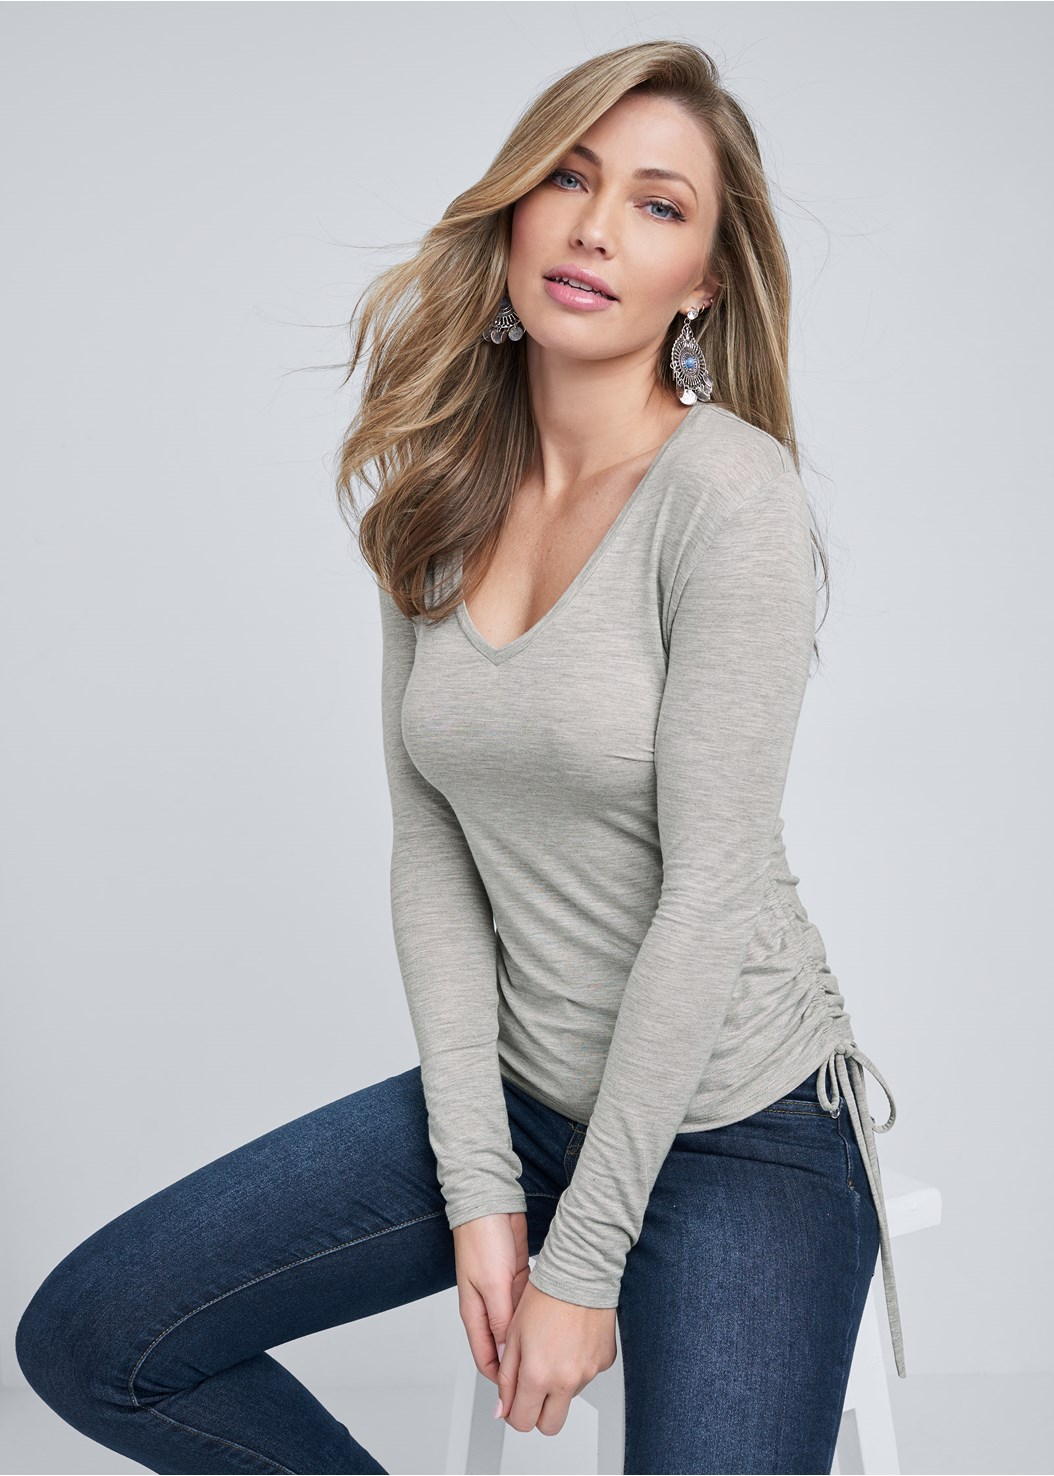 Ruched V-Neck Top,Mid Rise Color Skinny Jeans,Medallion Earrings